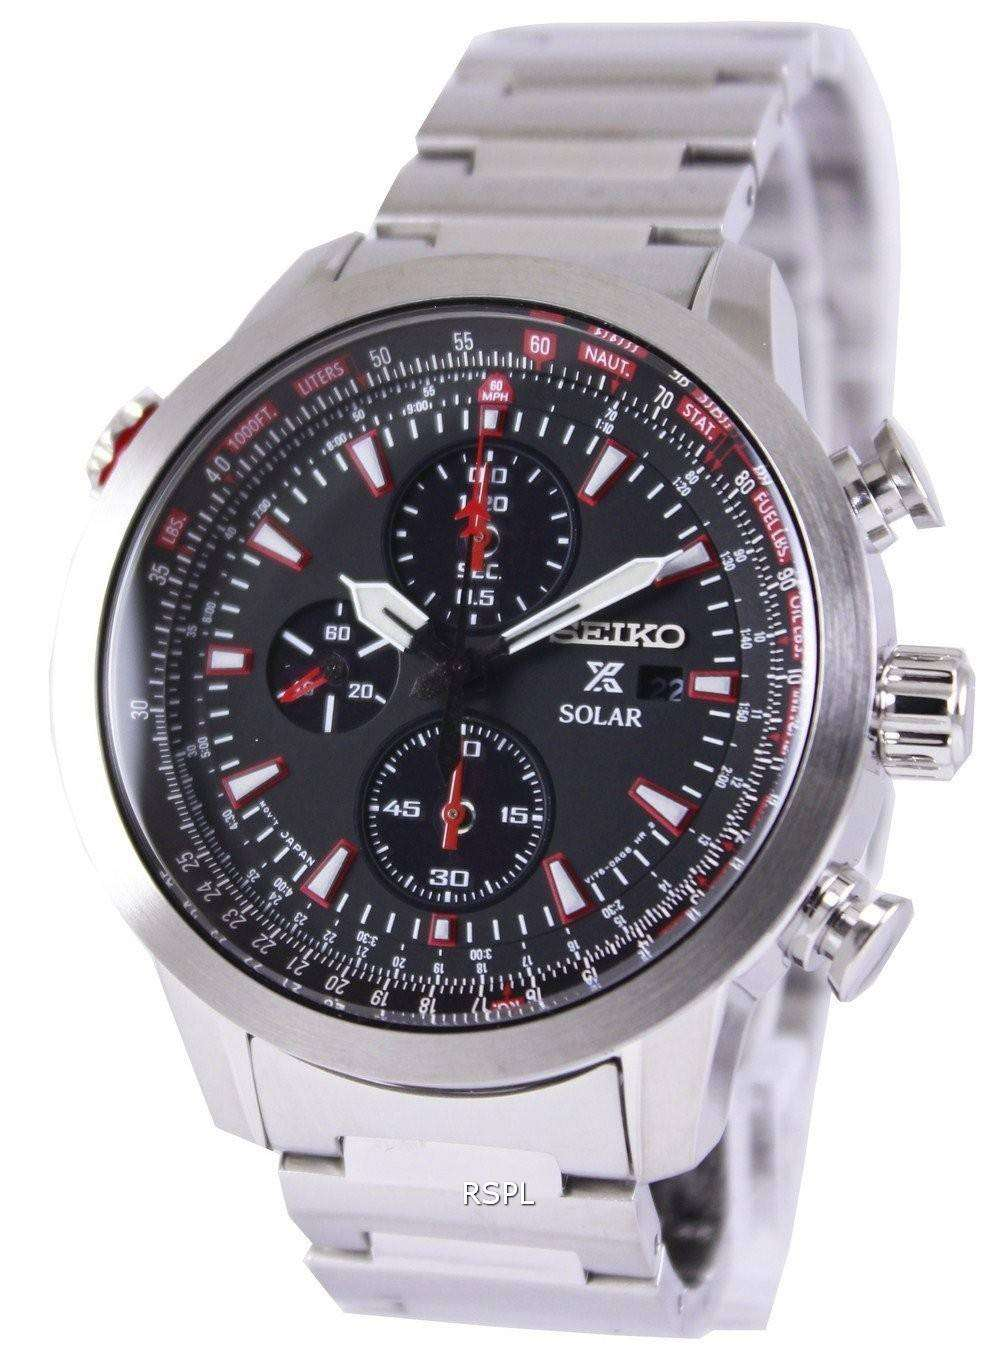 seiko prospex sky solar chronograph pilots ssc349p1. Black Bedroom Furniture Sets. Home Design Ideas